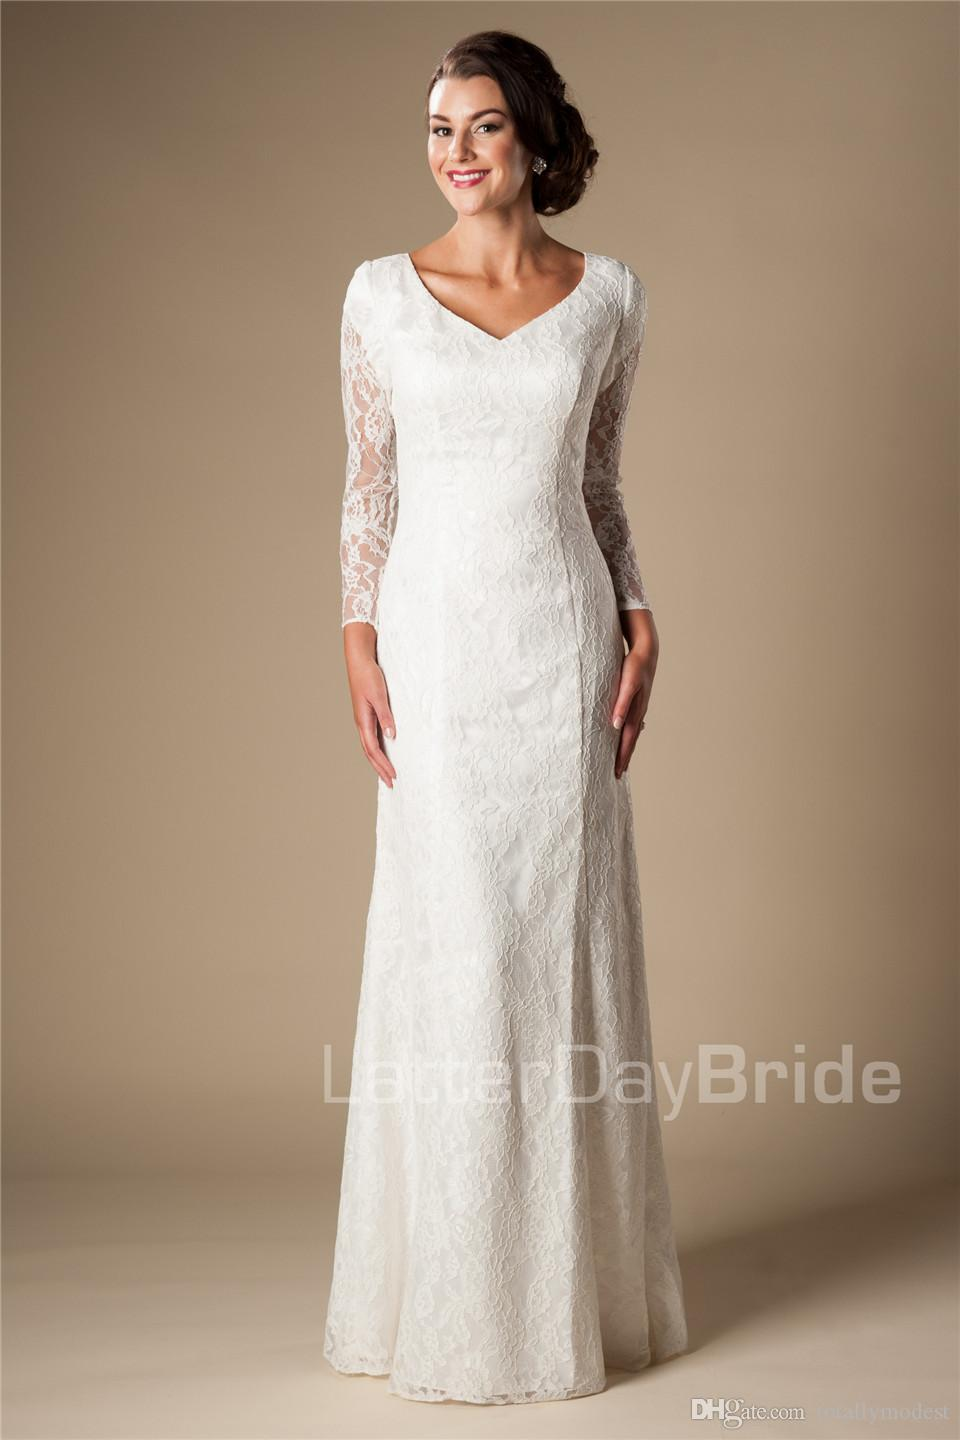 Vintage Ivory Lace Mermaid Modest Wedding Dresses With